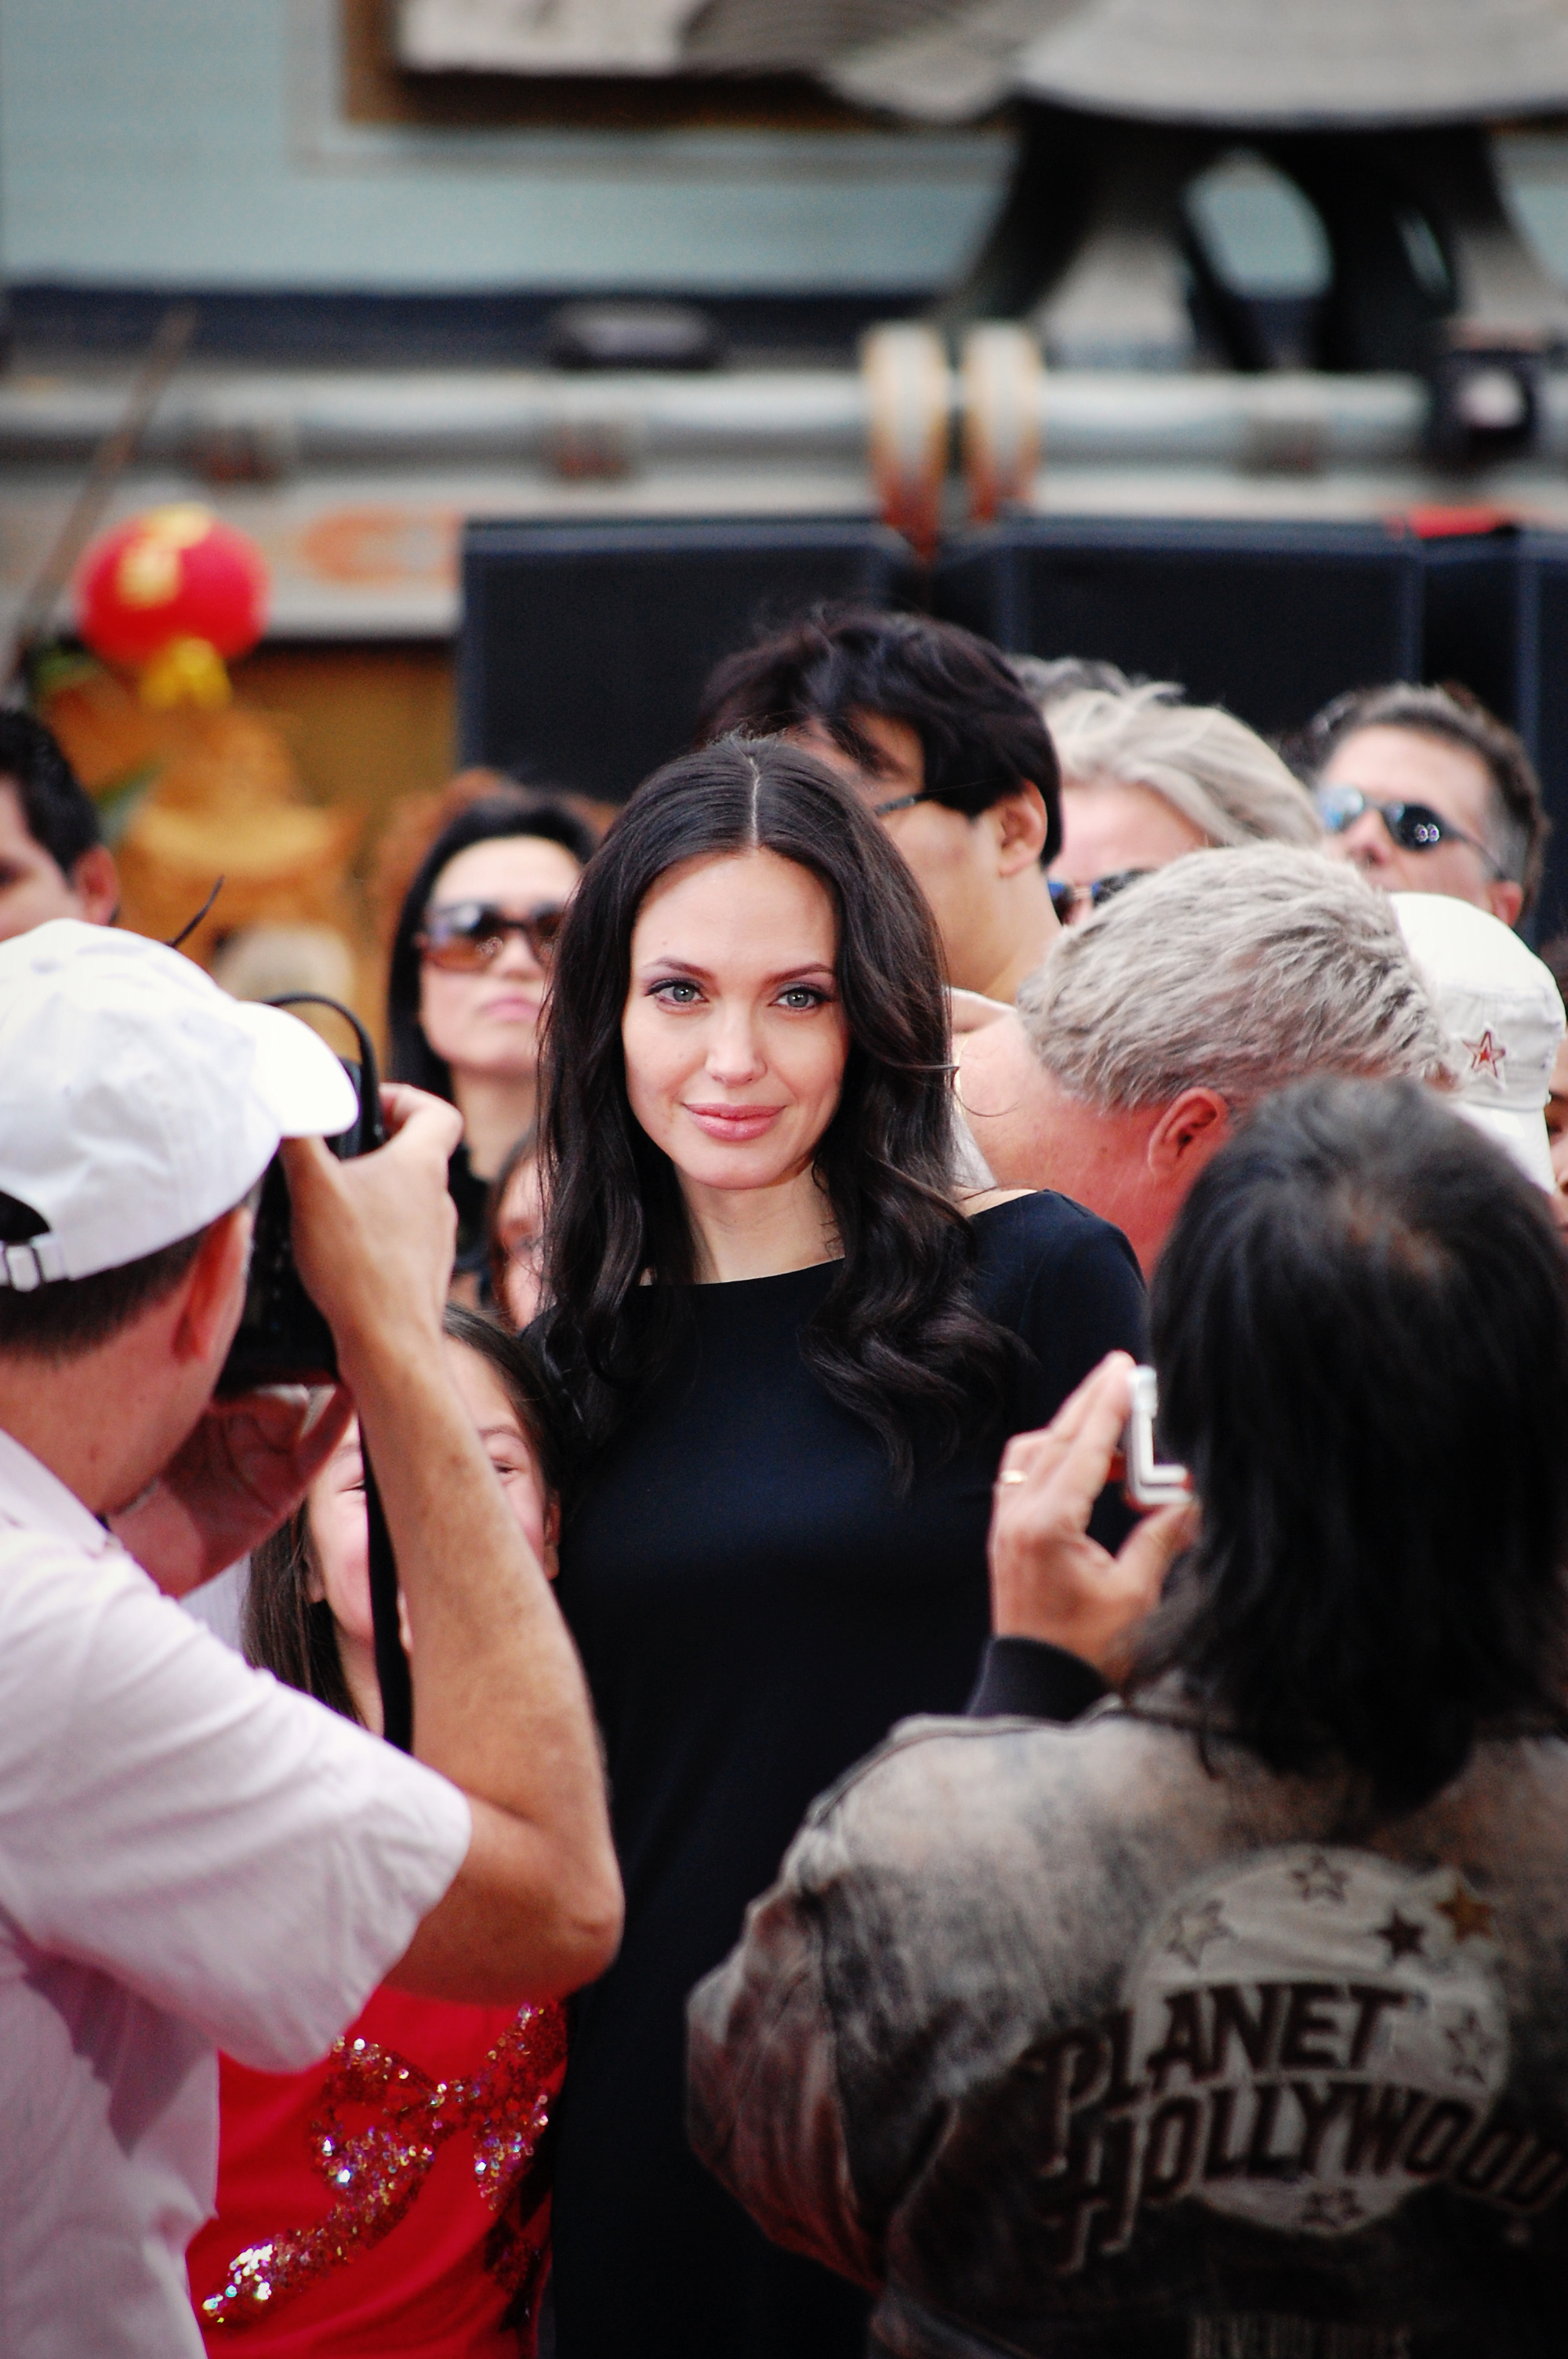 angelina jolie kung fu panda dvd release party